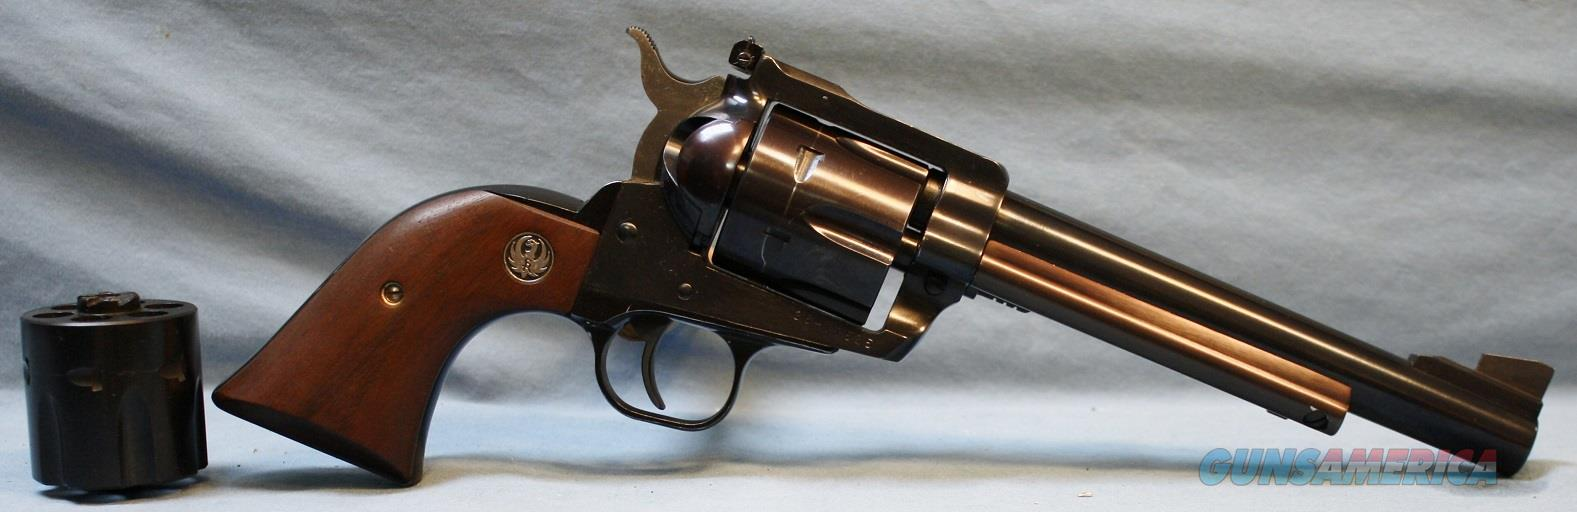 Ruger Blackhawk Single Action Revolver, 357 Magnum / 9mm (made in 1986) Free Shipping!  Guns > Pistols > Ruger Single Action Revolvers > Blackhawk Type